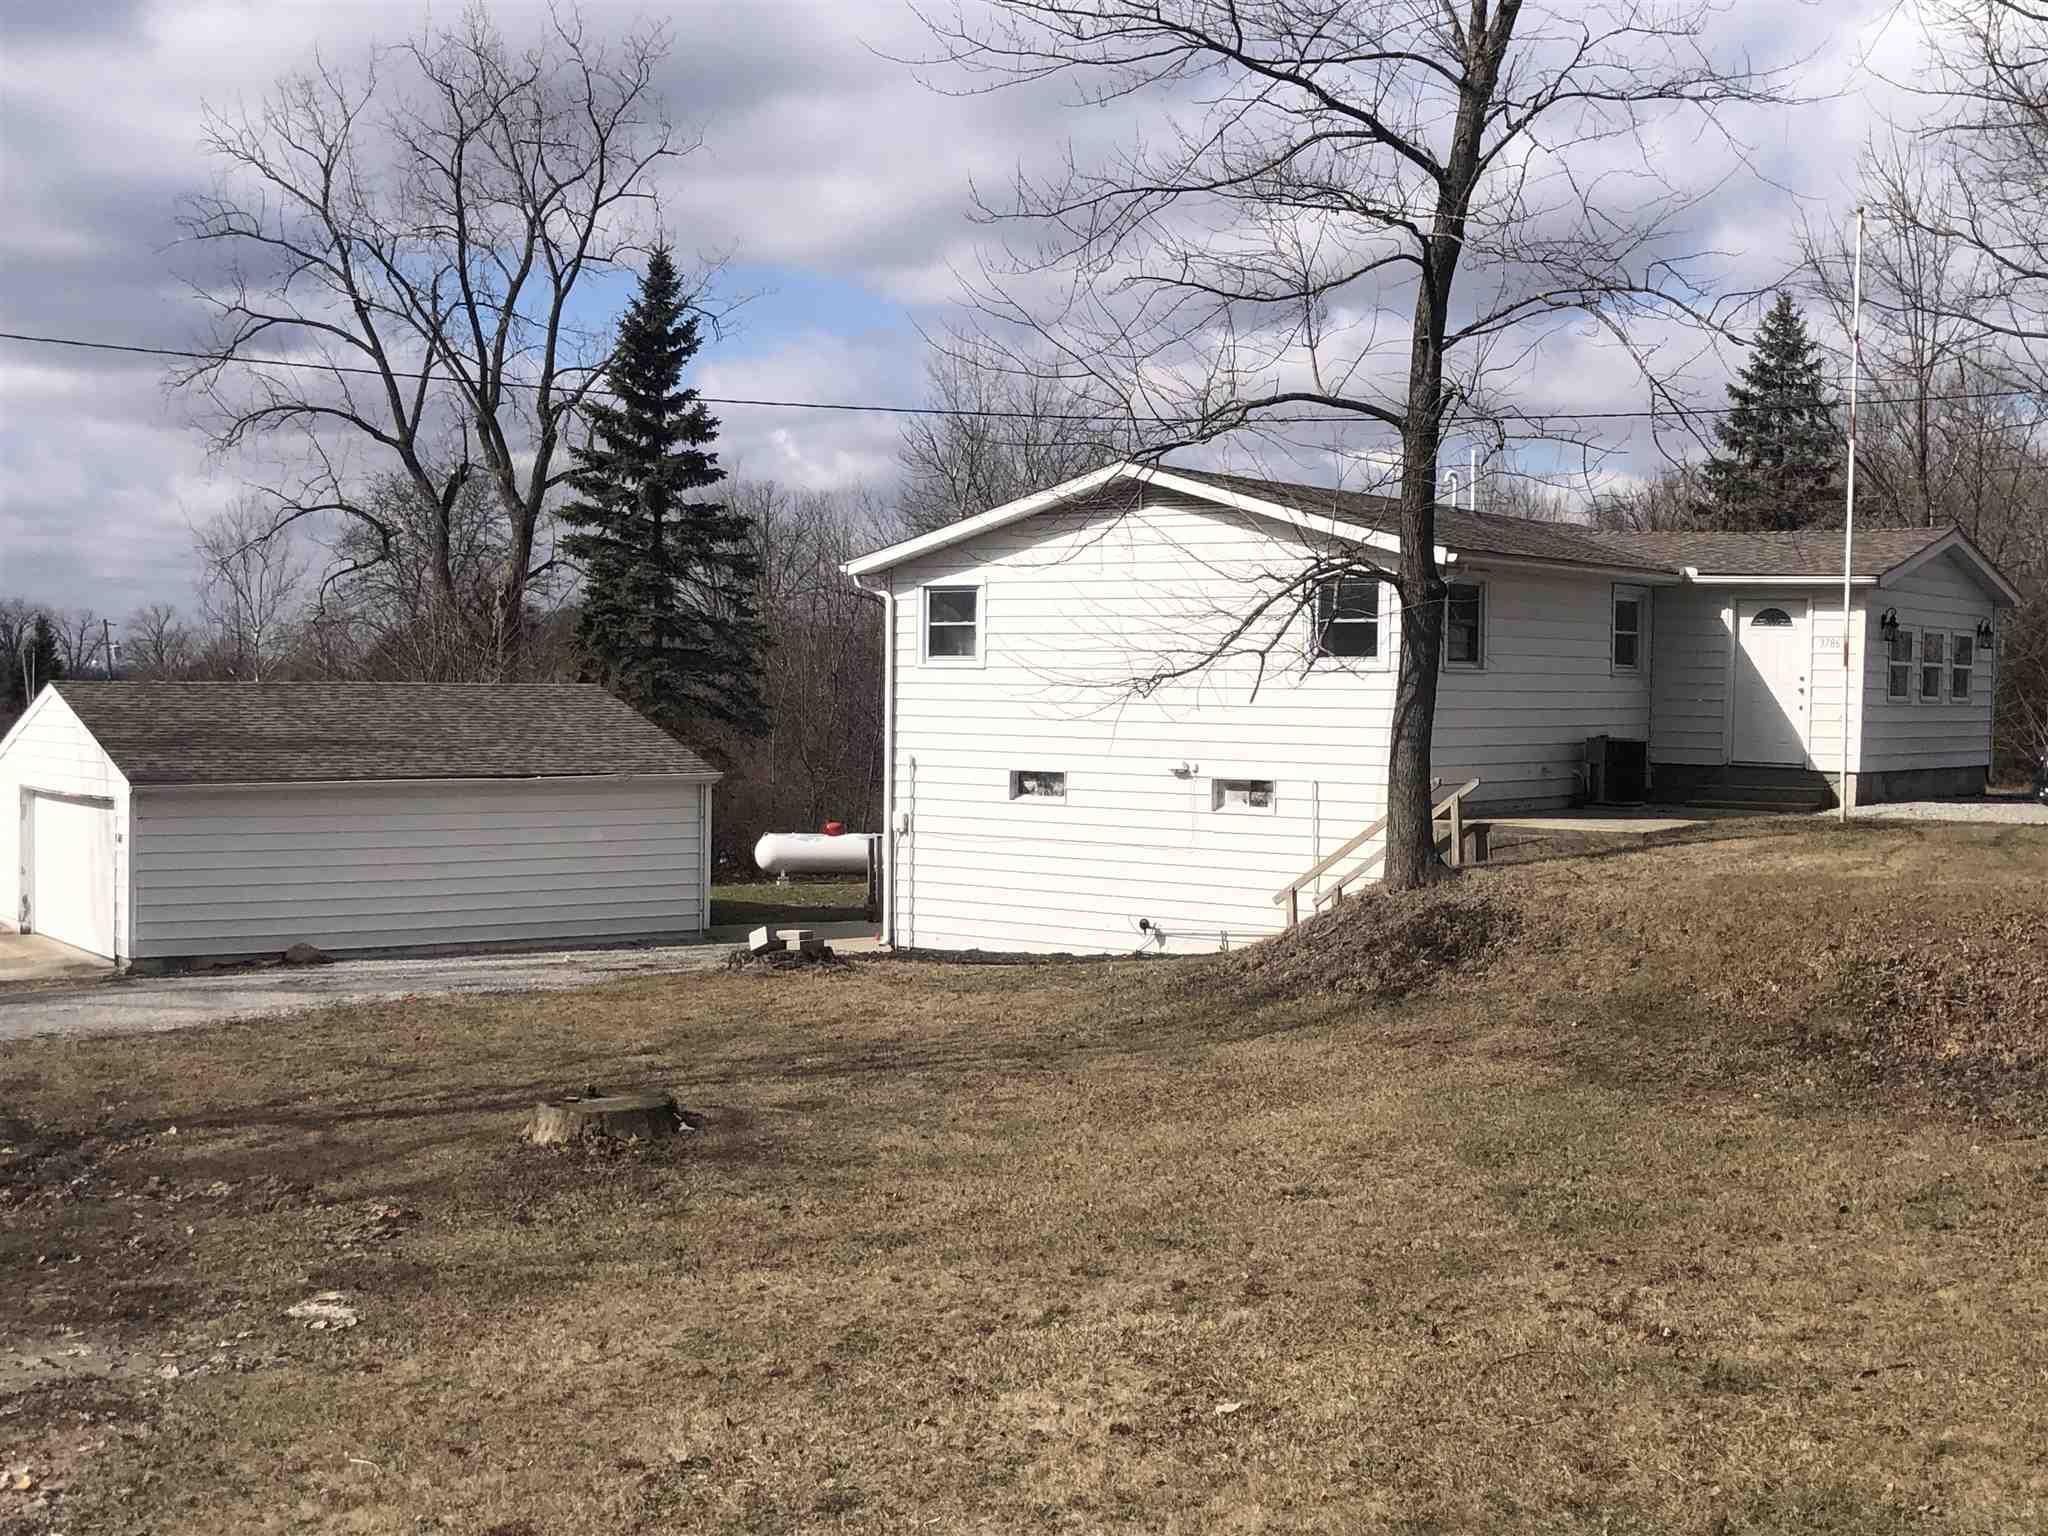 This cute lake home is available right before summer time! This home features amazing hard wood floors, a huge master bedroom closet, a new well, a newer roof, and endless potential for the unfinished walk out basement! Do not miss out on seeing this beautiful home.